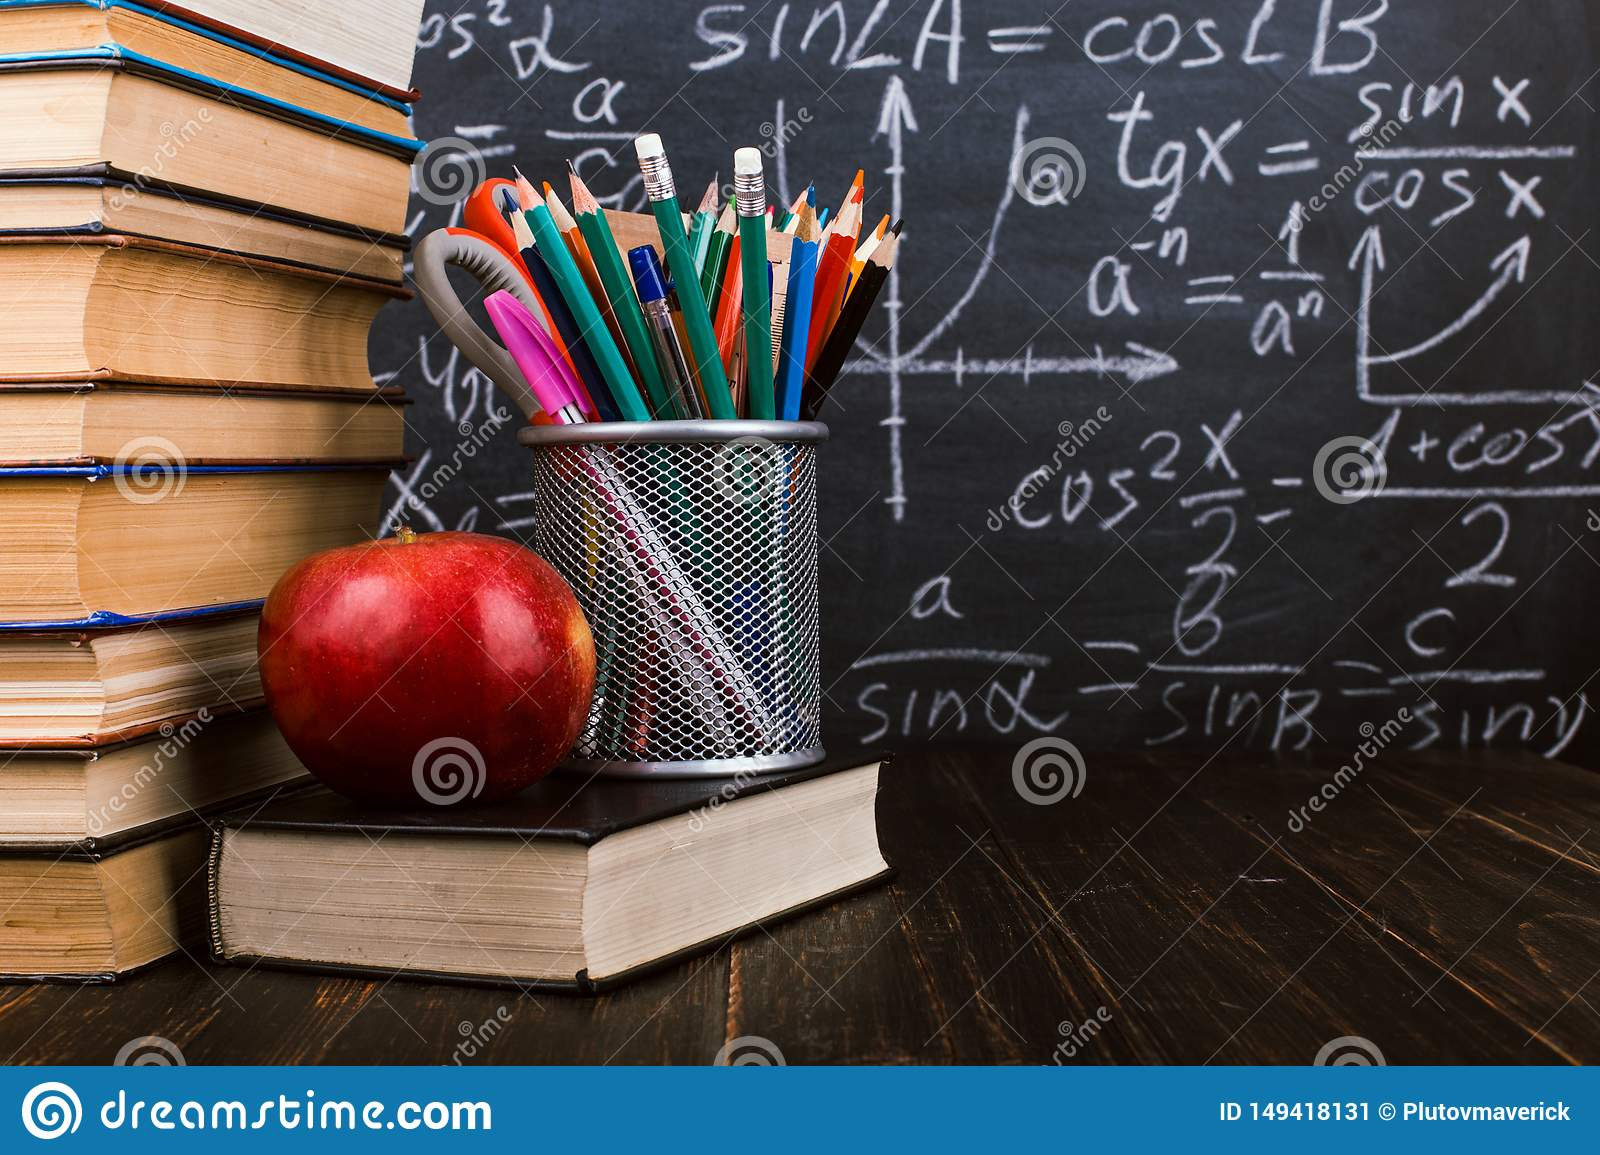 Books, an apple, stand for pens on wooden table, against the background of chalk board with formulas. Teacher`s day concept and